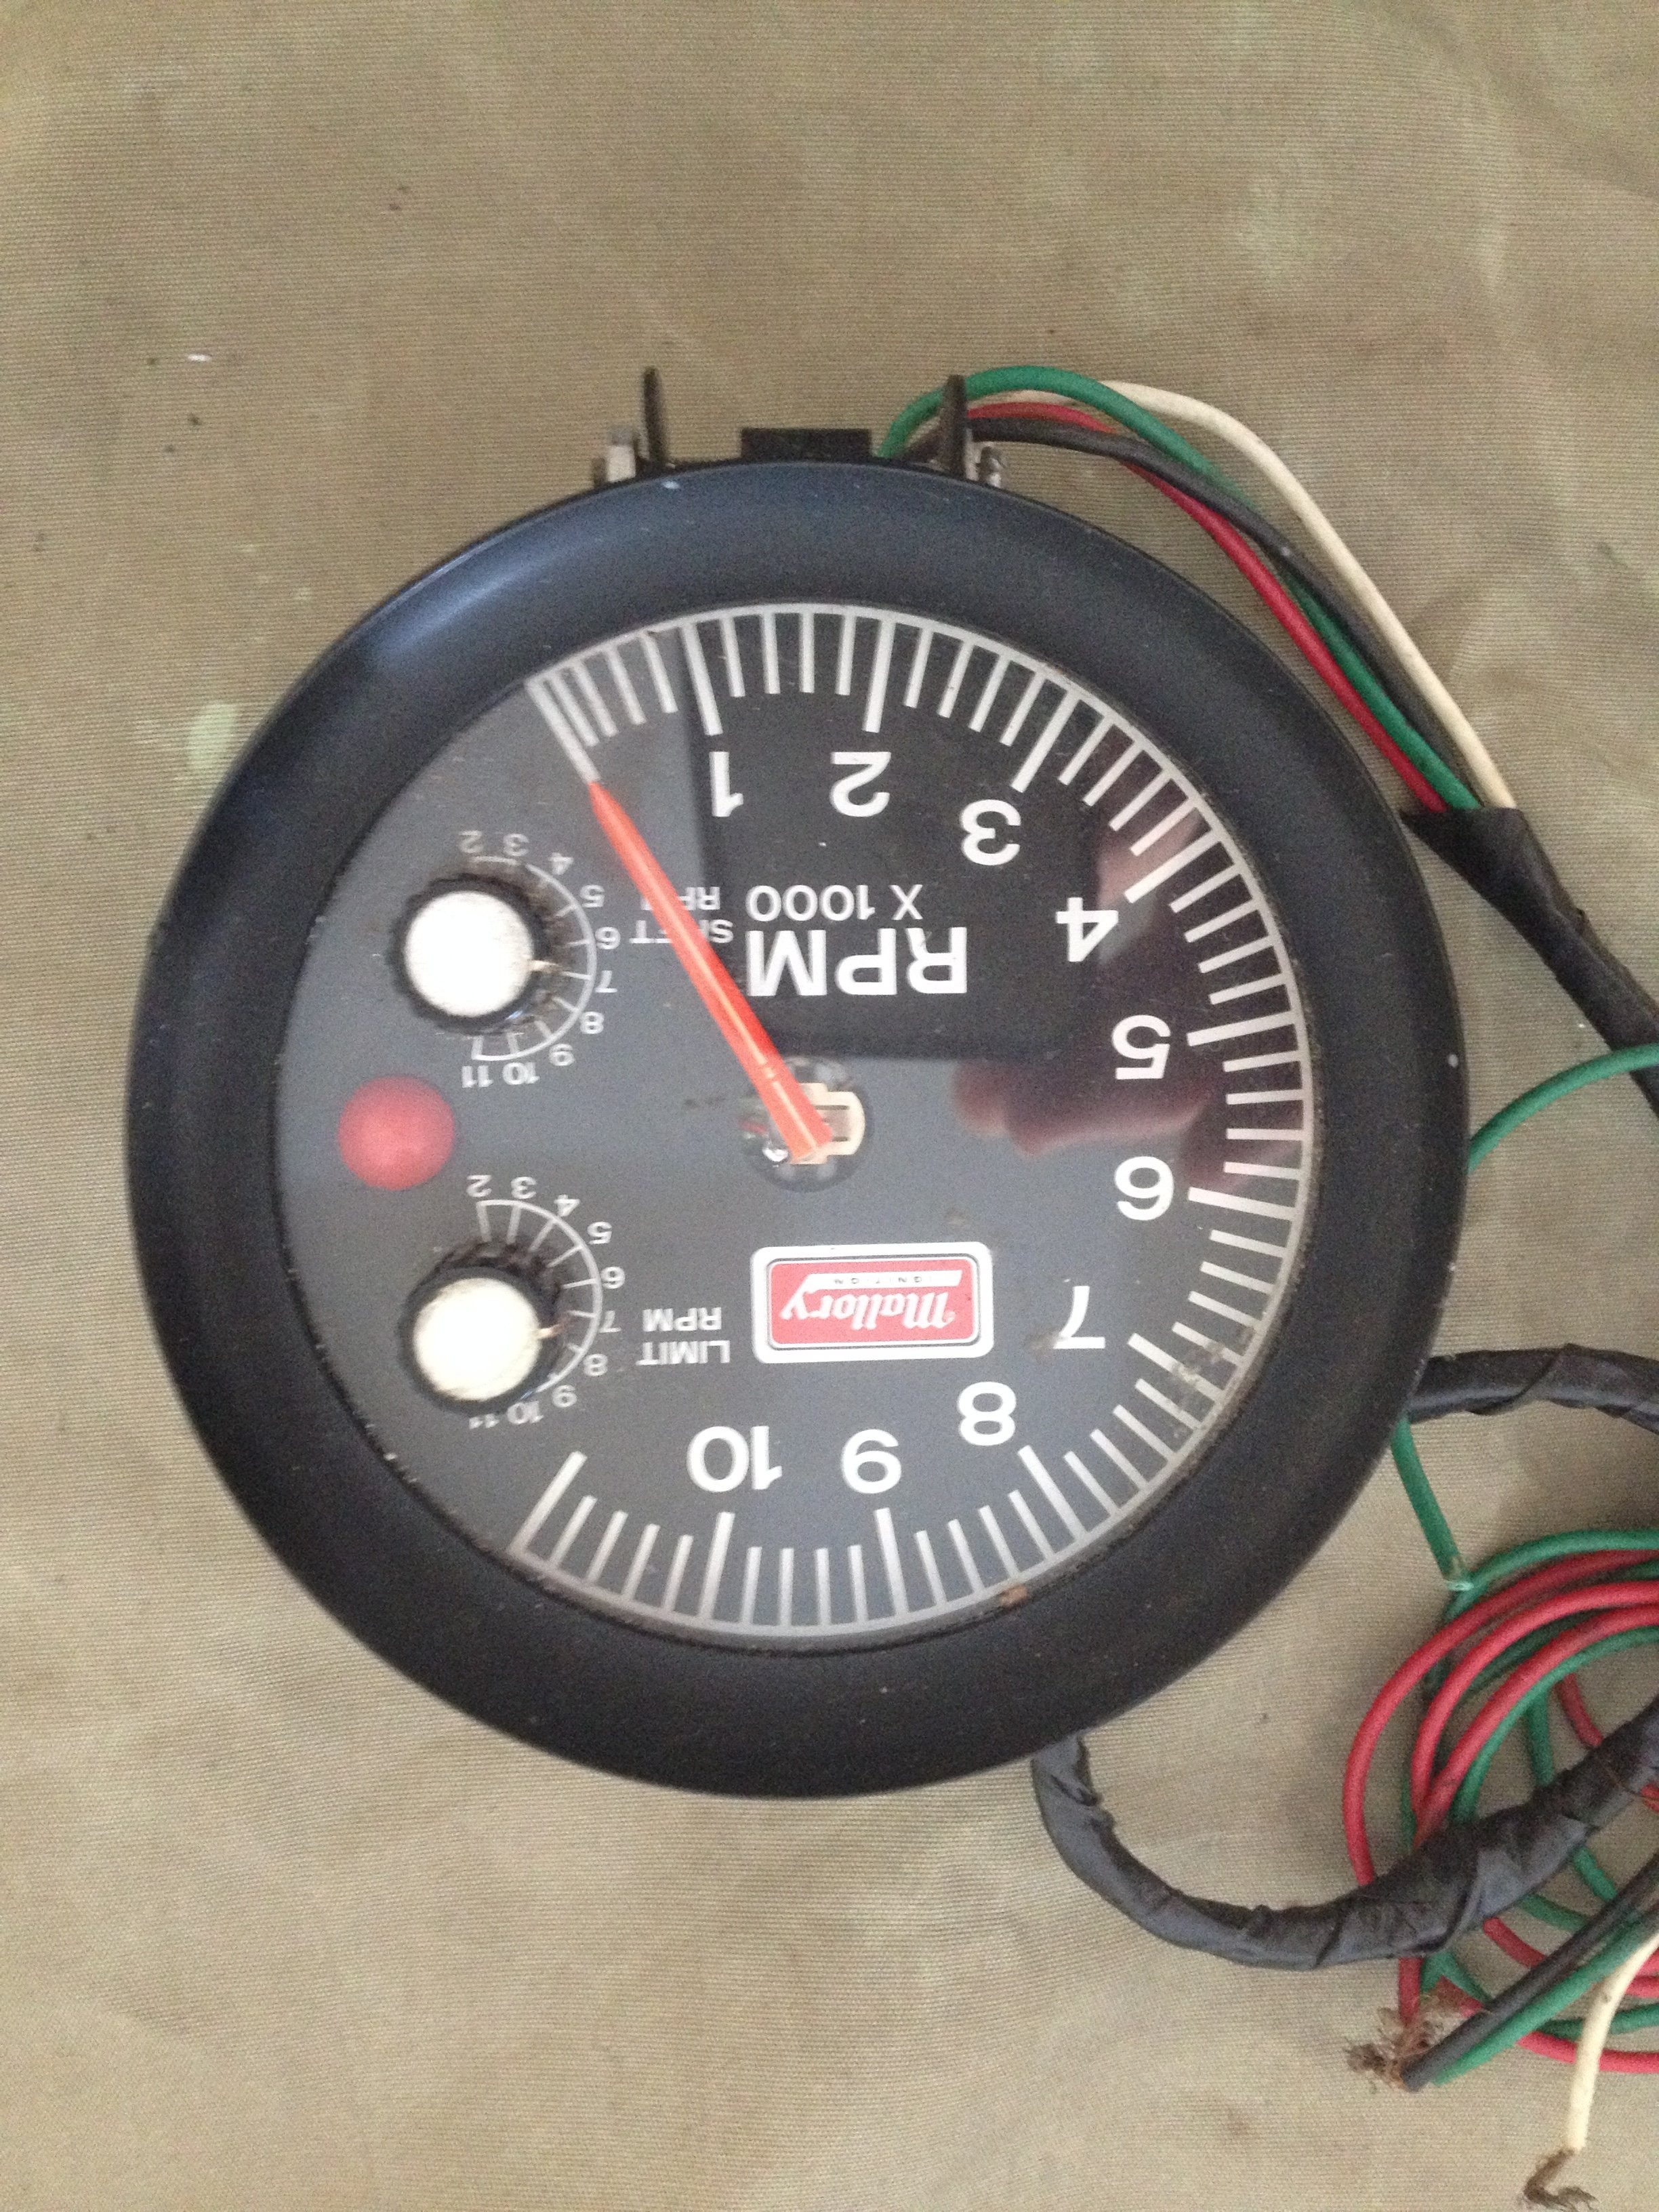 Mallory Tachometer Wiring Diagram Diagrams Marine For Sale 11k Rpm W Adjustable Rev Limititer Rh Forabodiesonly Com Vdo